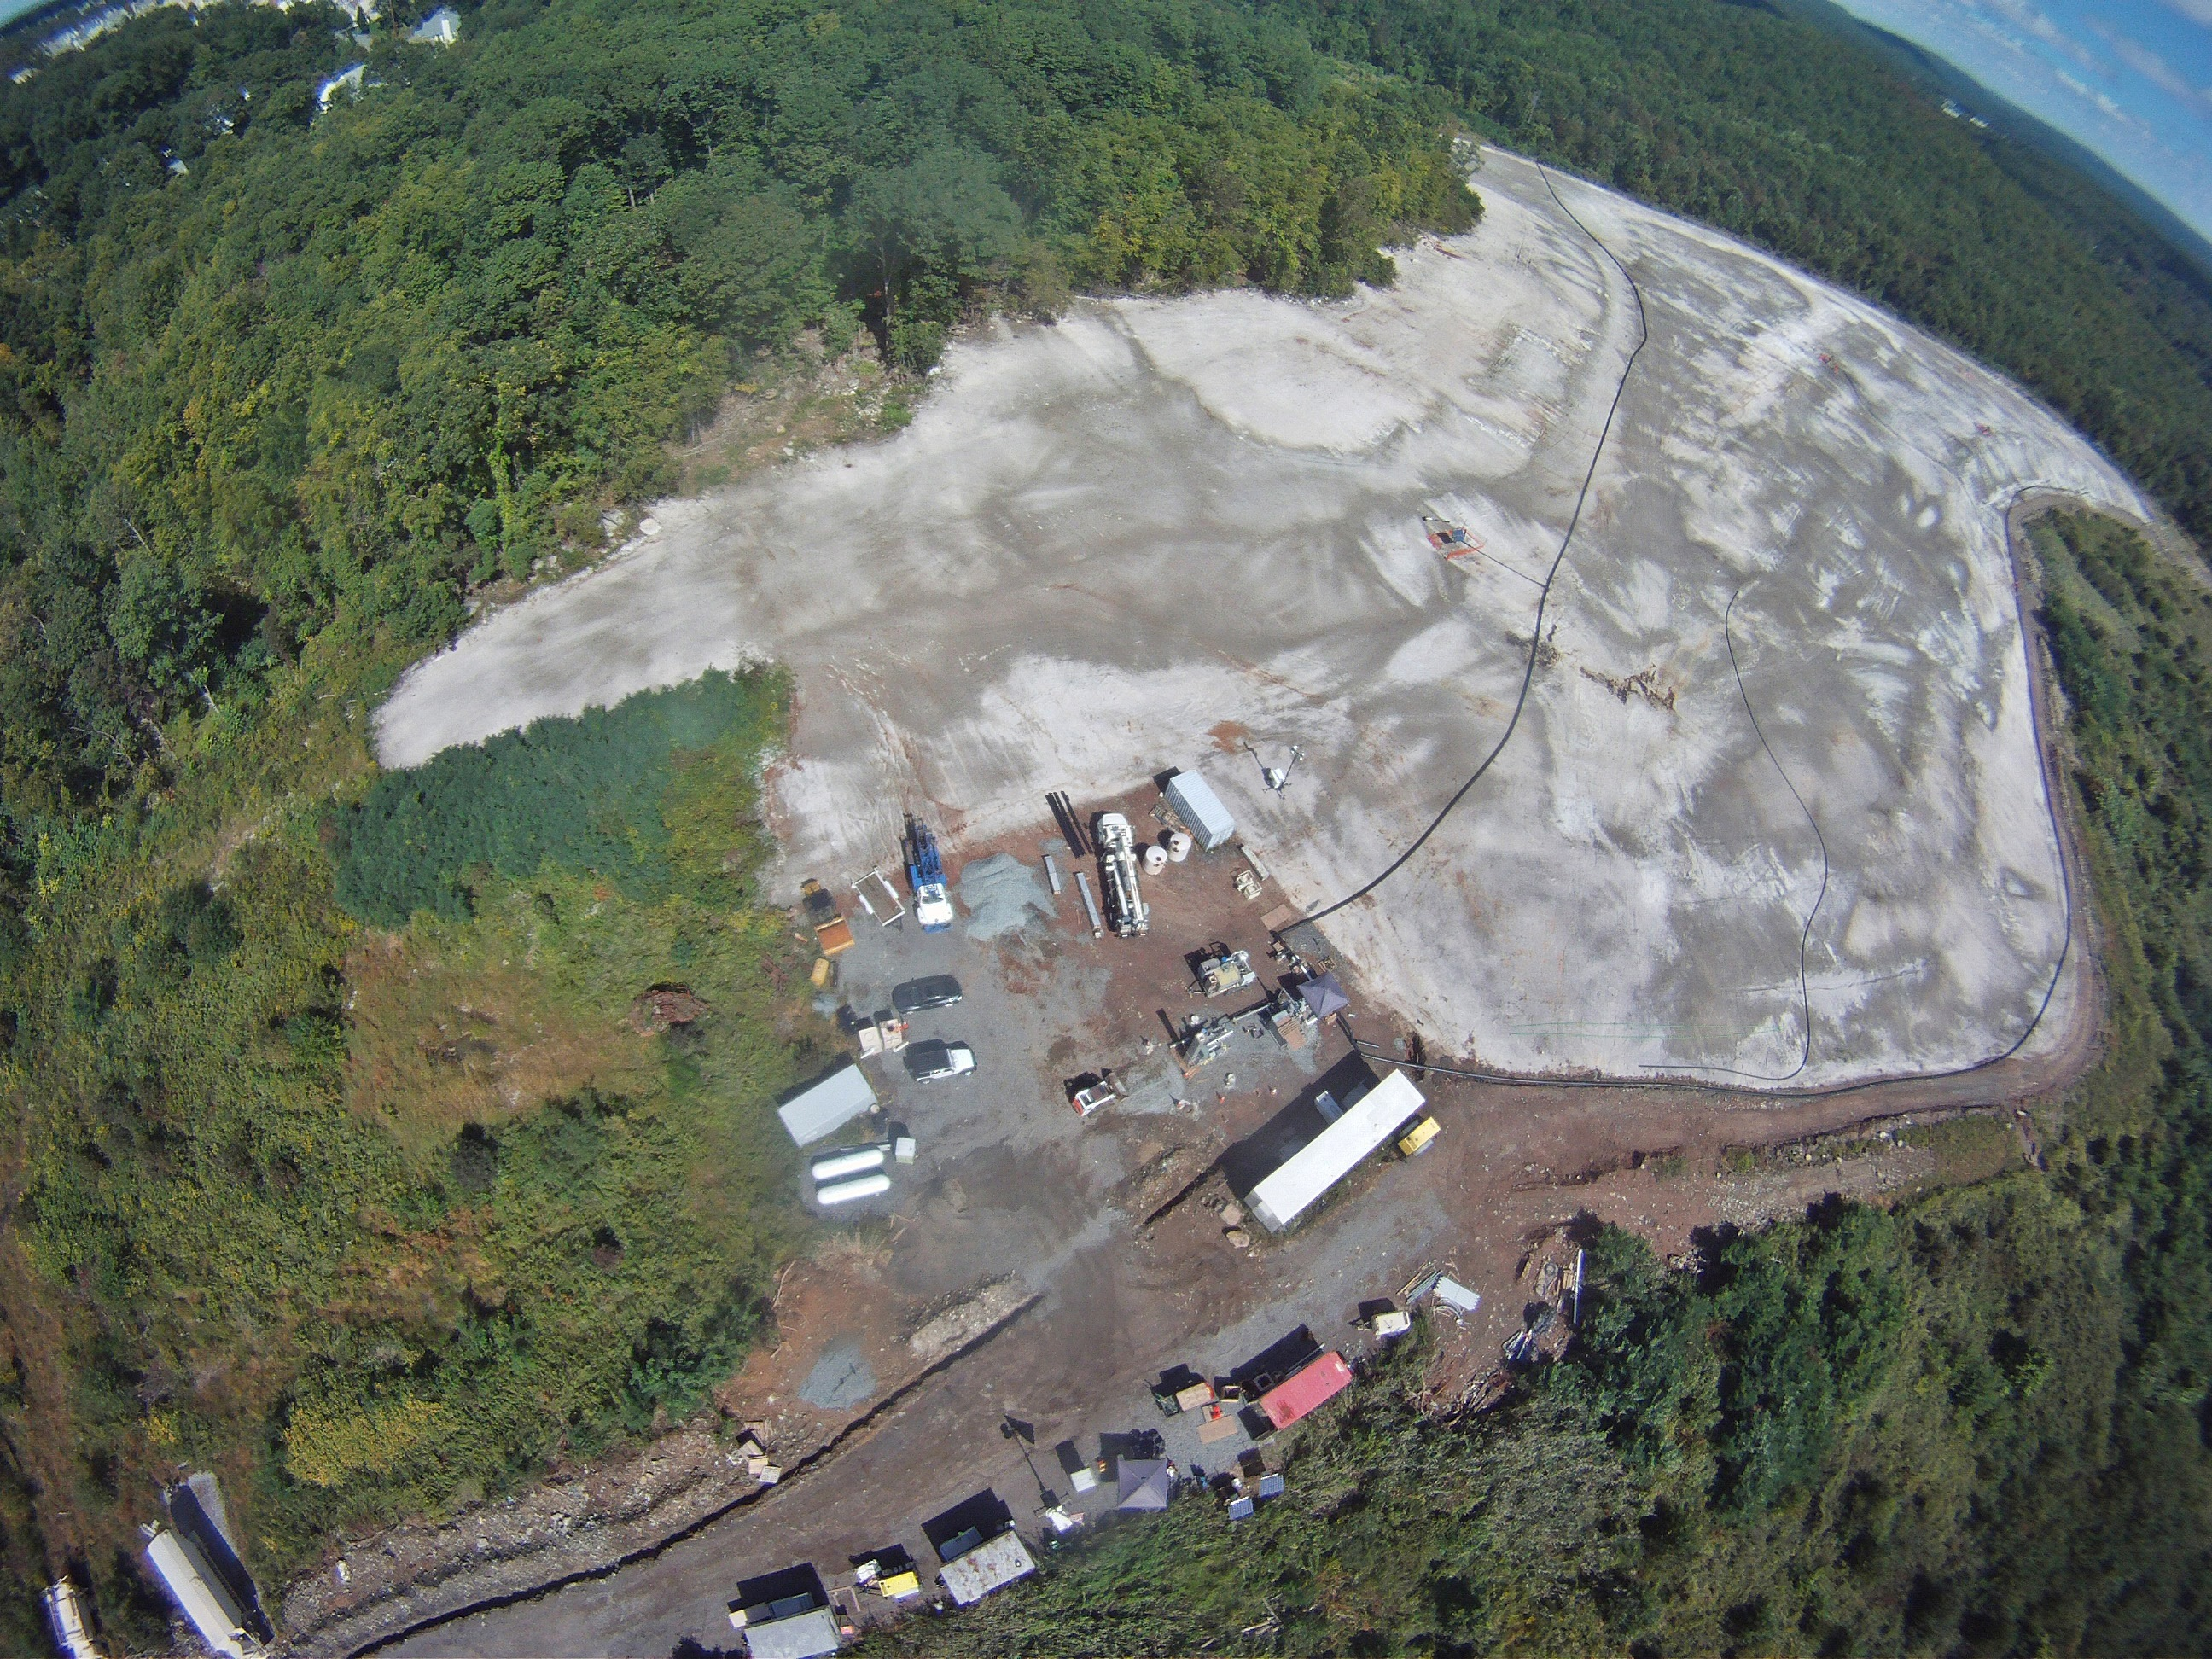 Roxbury Gets to Argue Against Landfill's Return to Owner